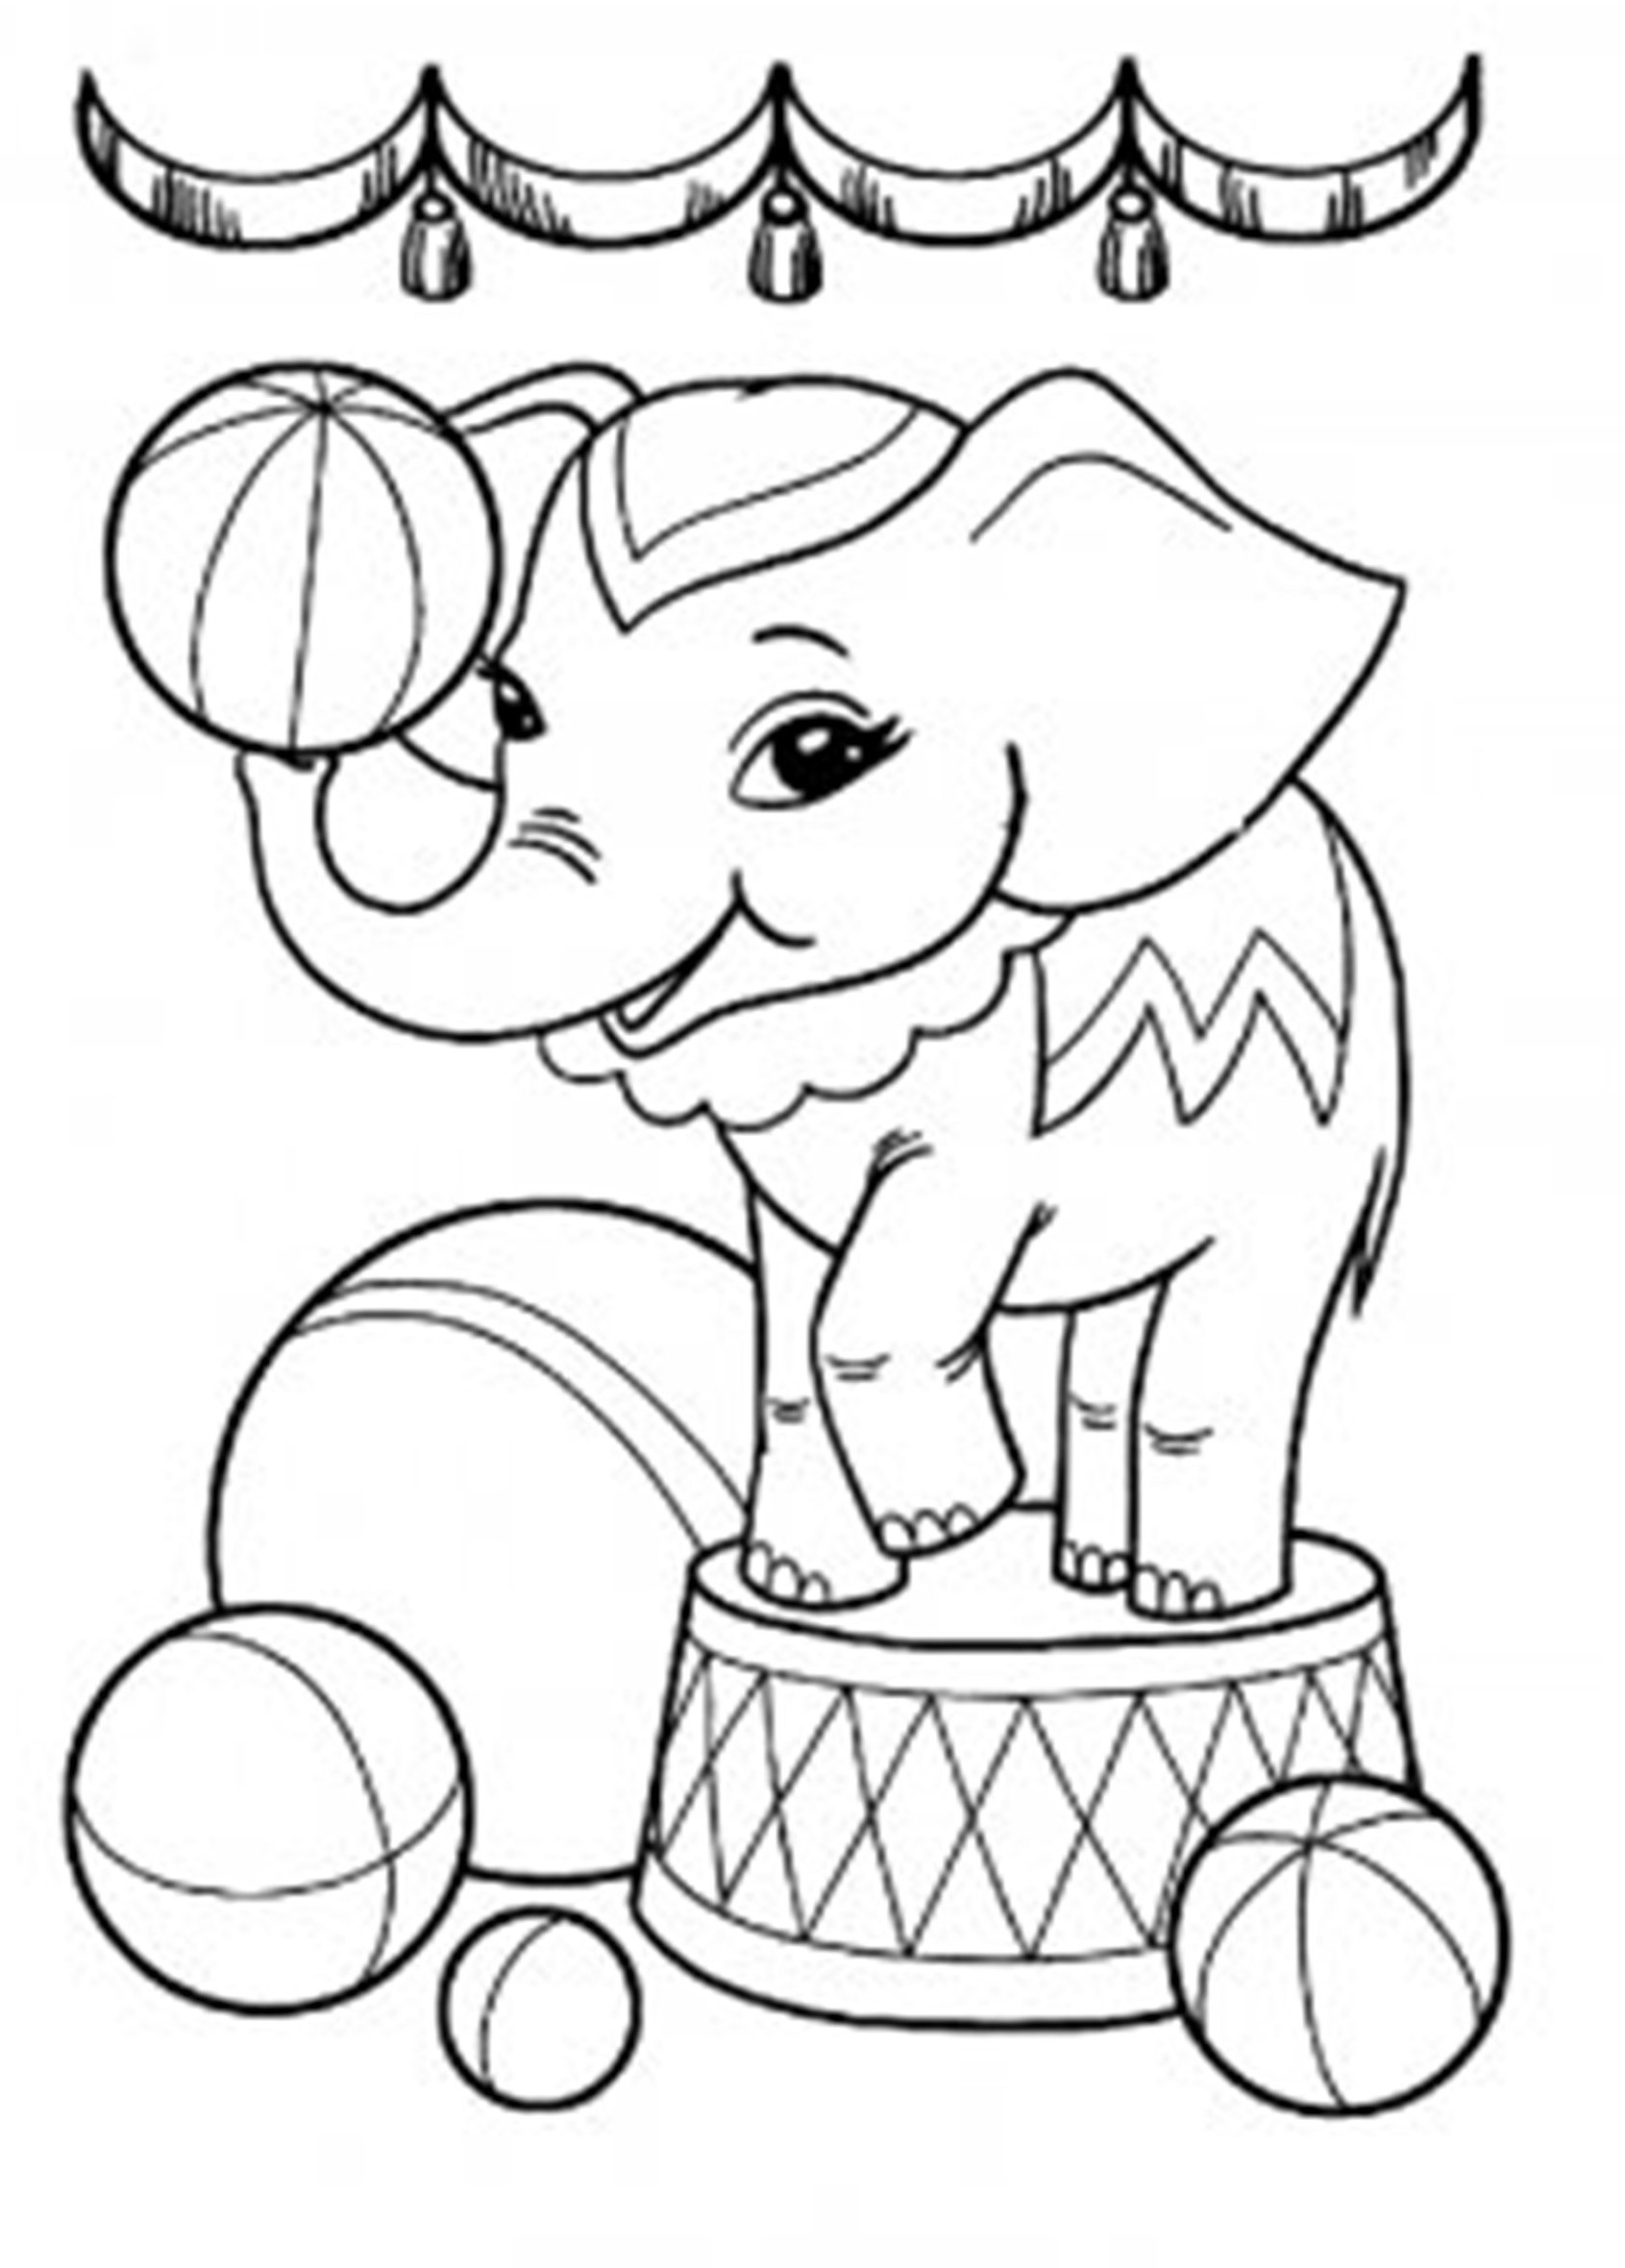 colouring picture of elephant elephant coloring pages for kids printable for free picture of elephant colouring